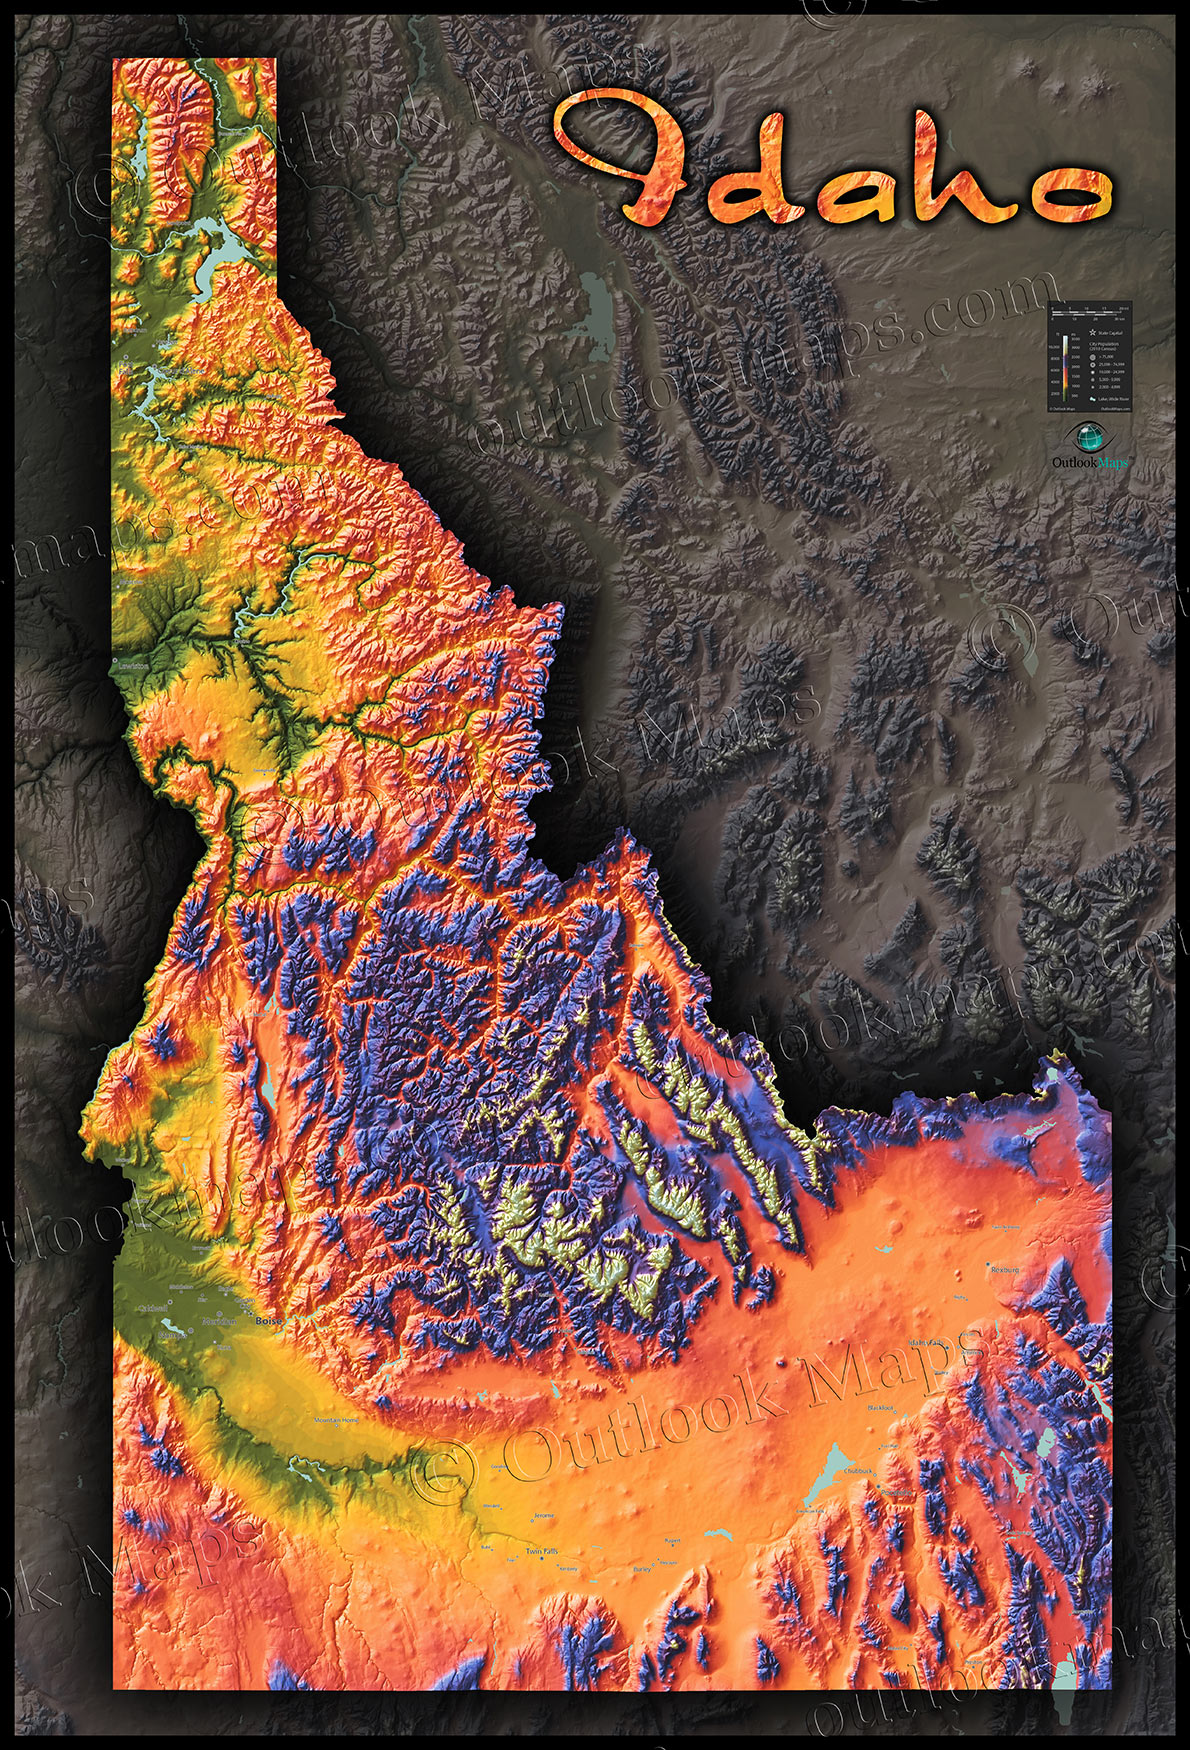 Topographic Map Rocky Mountains.Colorful Idaho Map Physical Topography Of Rocky Mountains